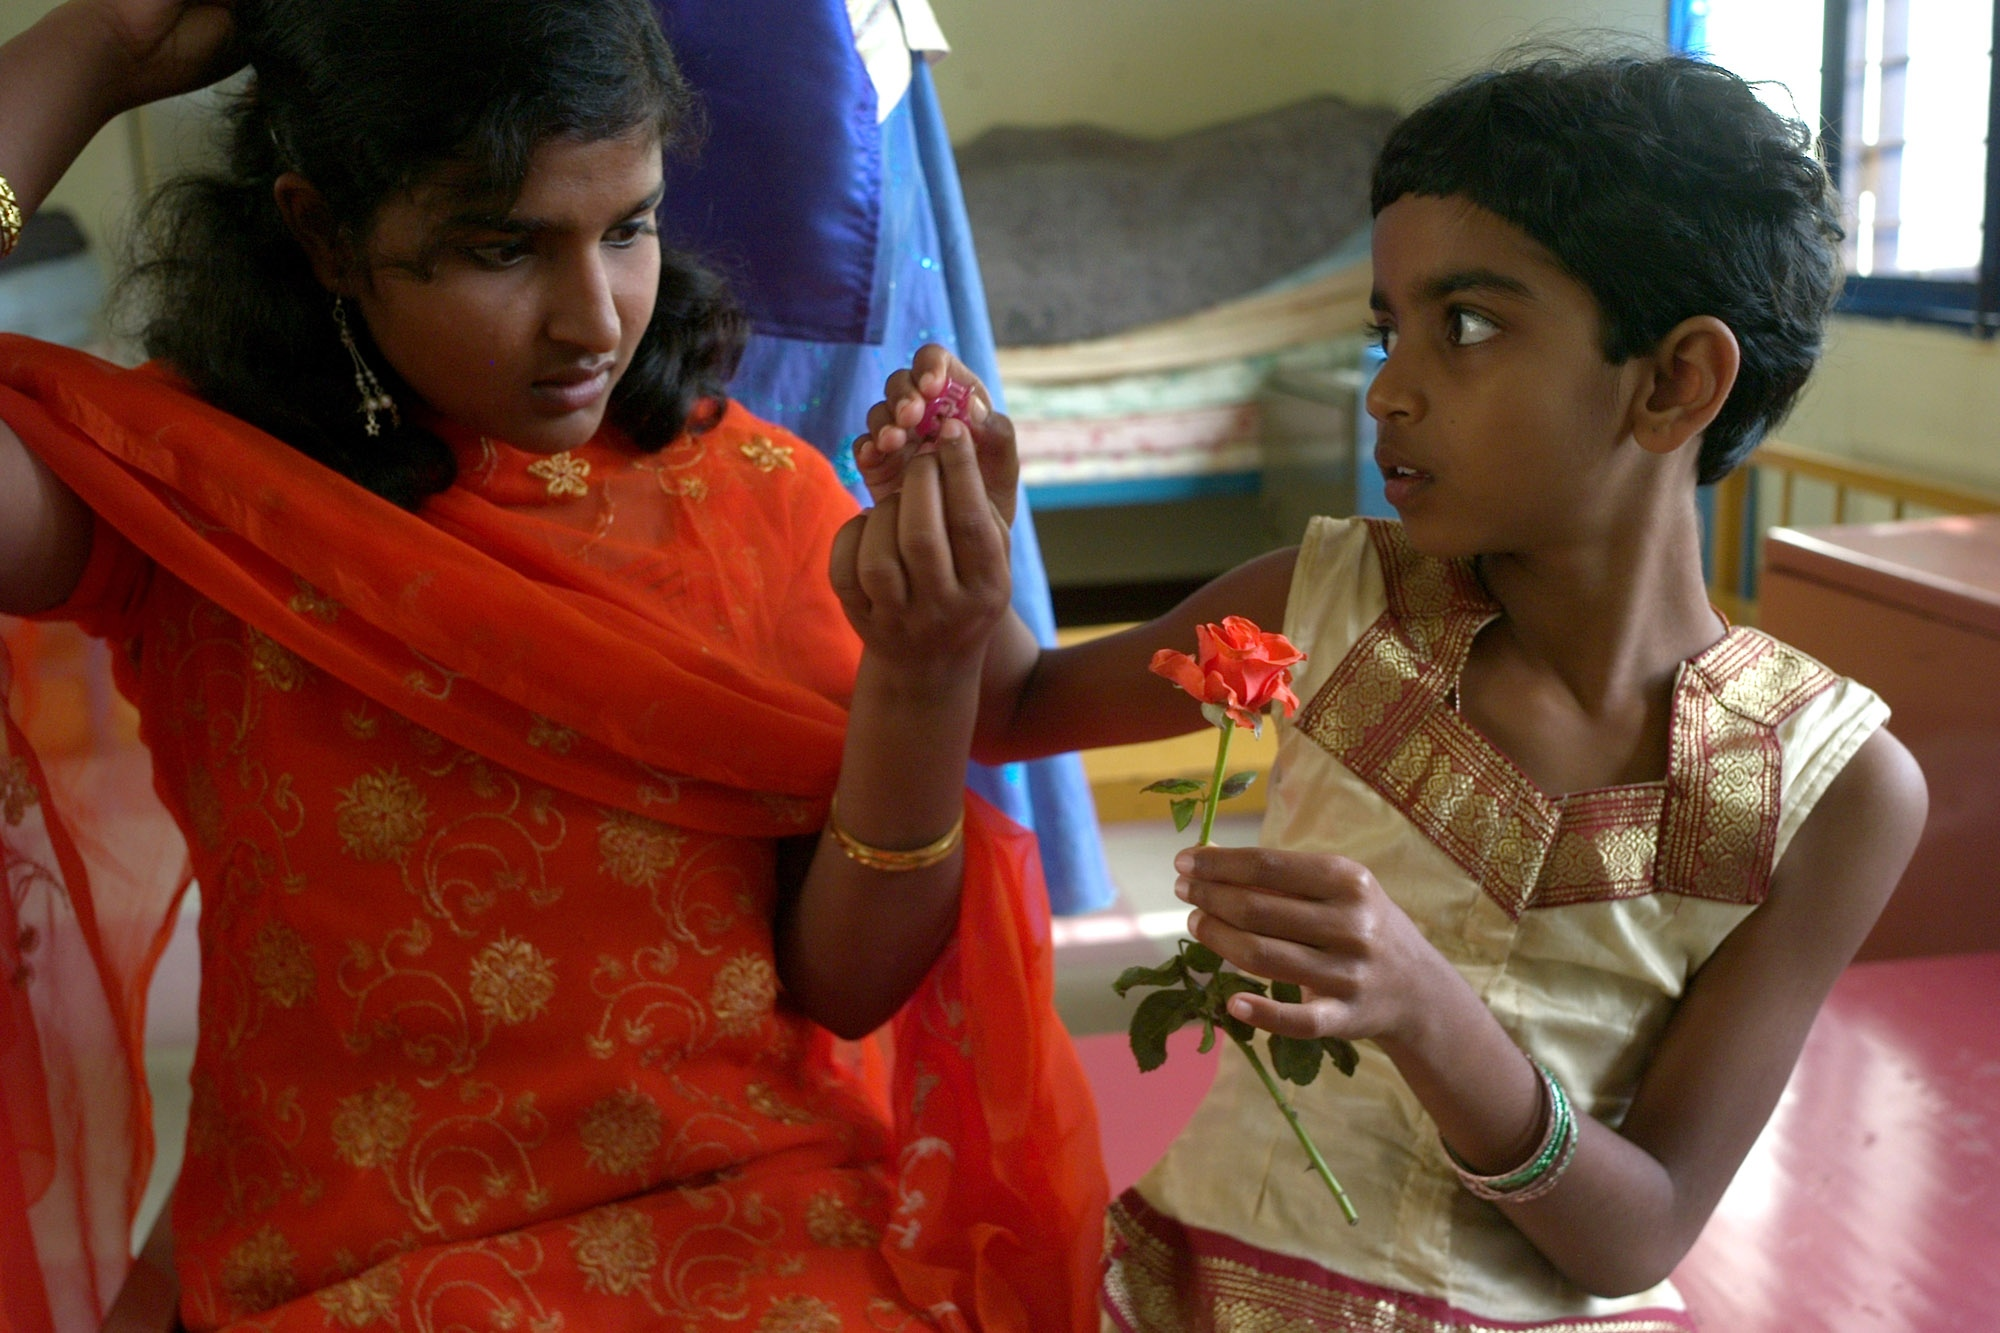 Shilpa Raj, 15, left, gets ready to see her father for the holidays after 6-months at the school.